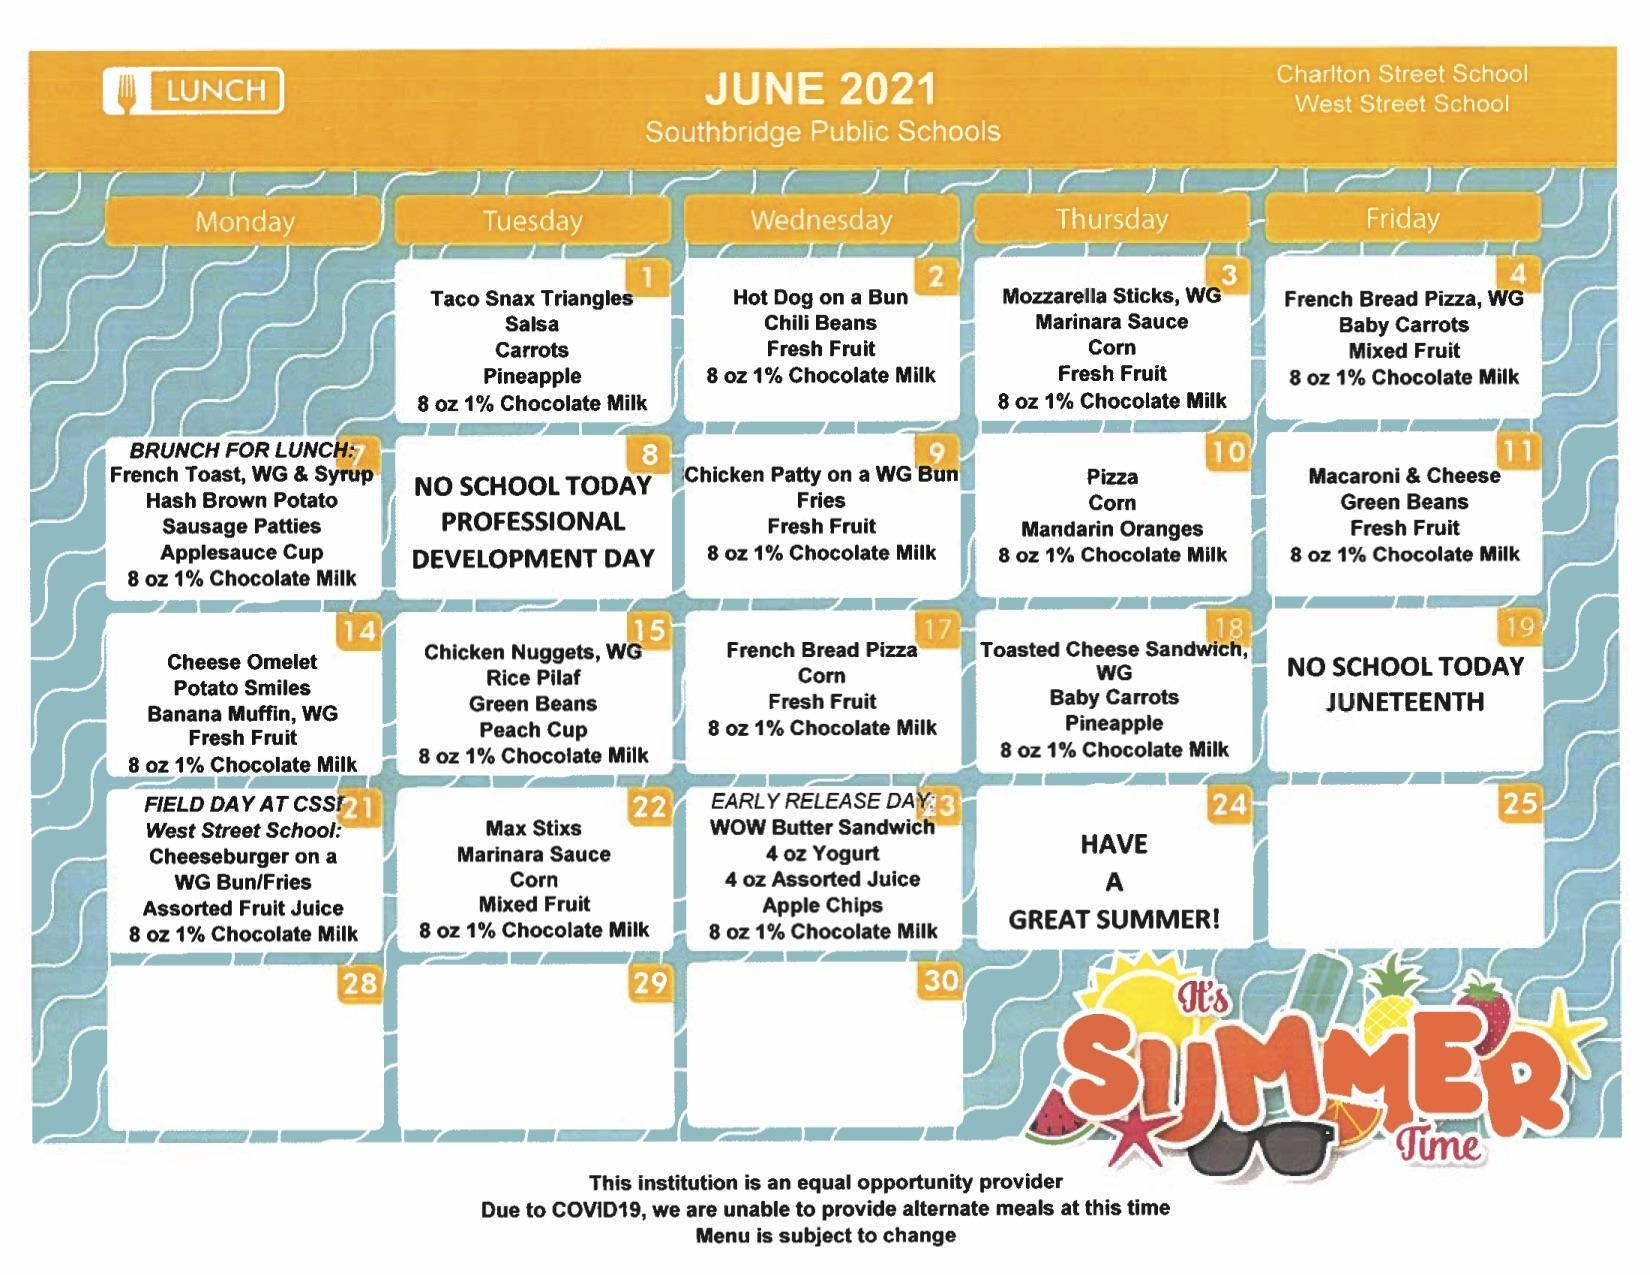 lunch menus for June 2021 - Charlton Street and West Street Schools